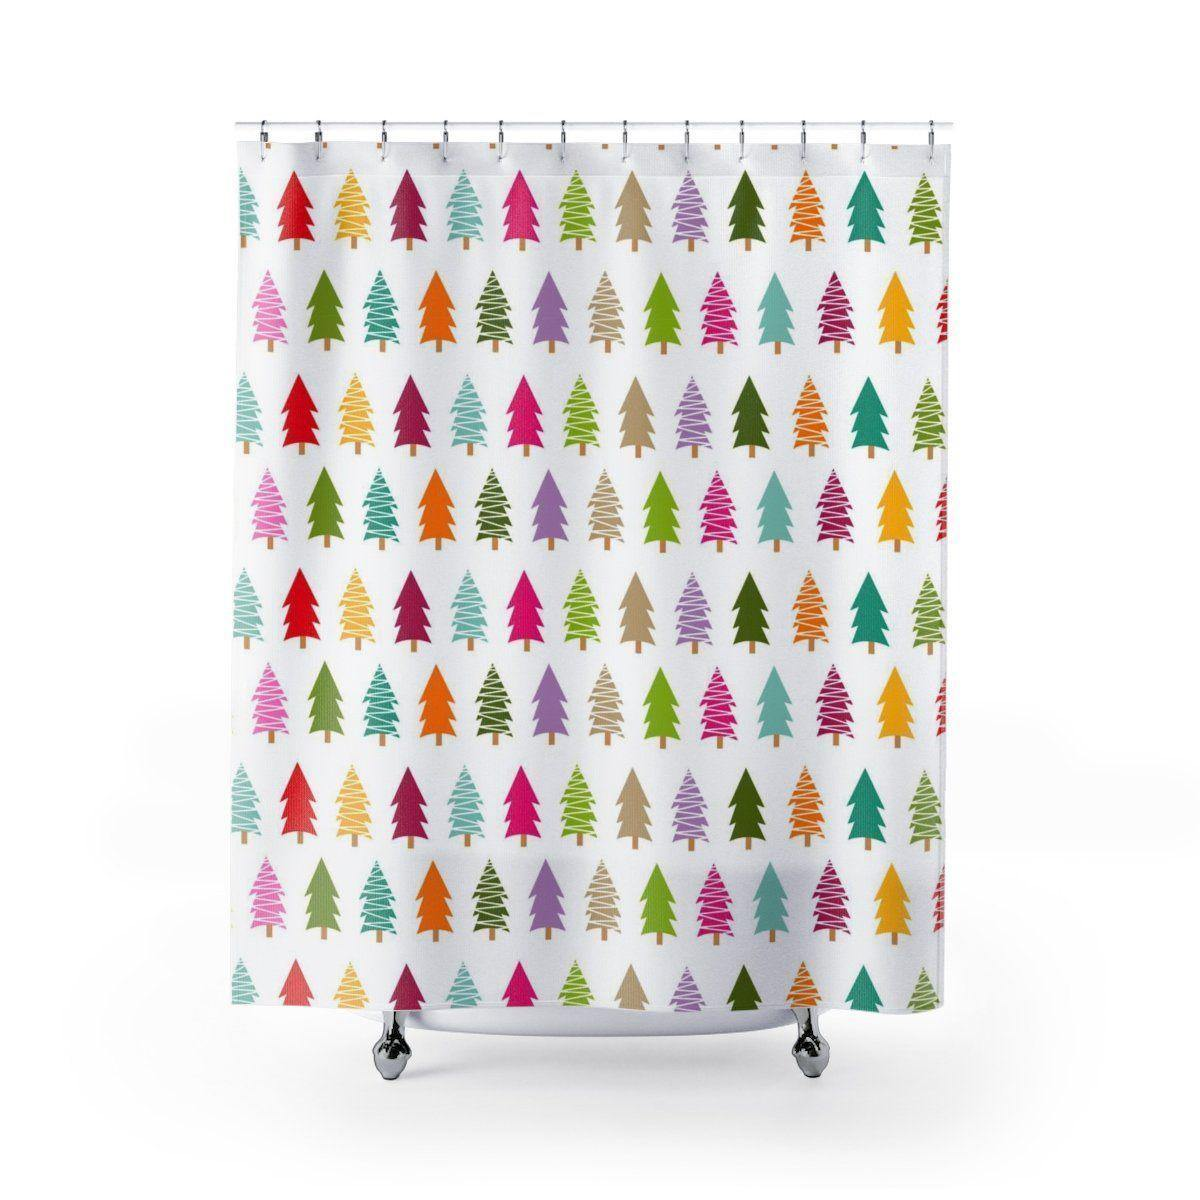 Christmas Tree Shower Curtain - Shower Curtains - W.FRANCIS